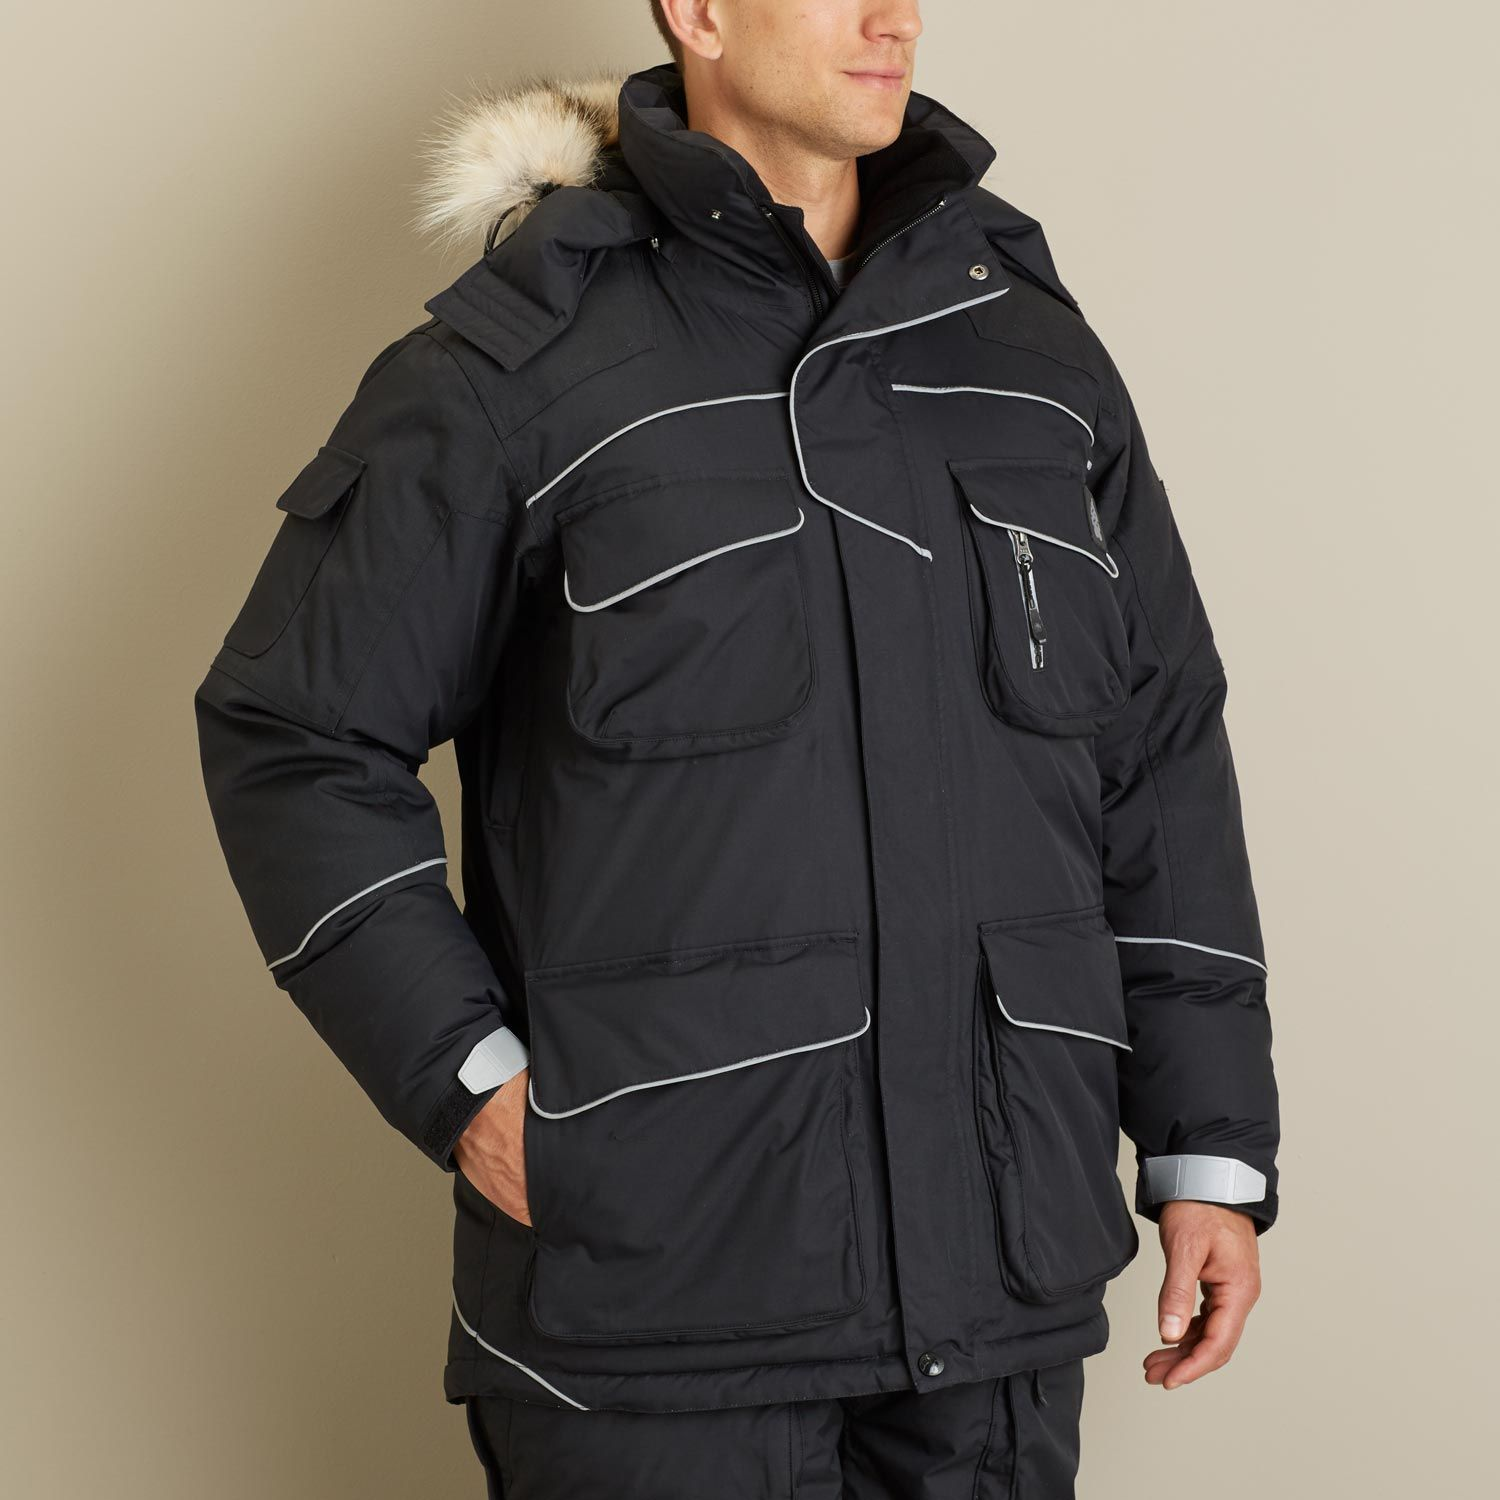 RefrigiWear Men/'s Waterproof ErgoForce Insulated Jacket with Reflective Piping